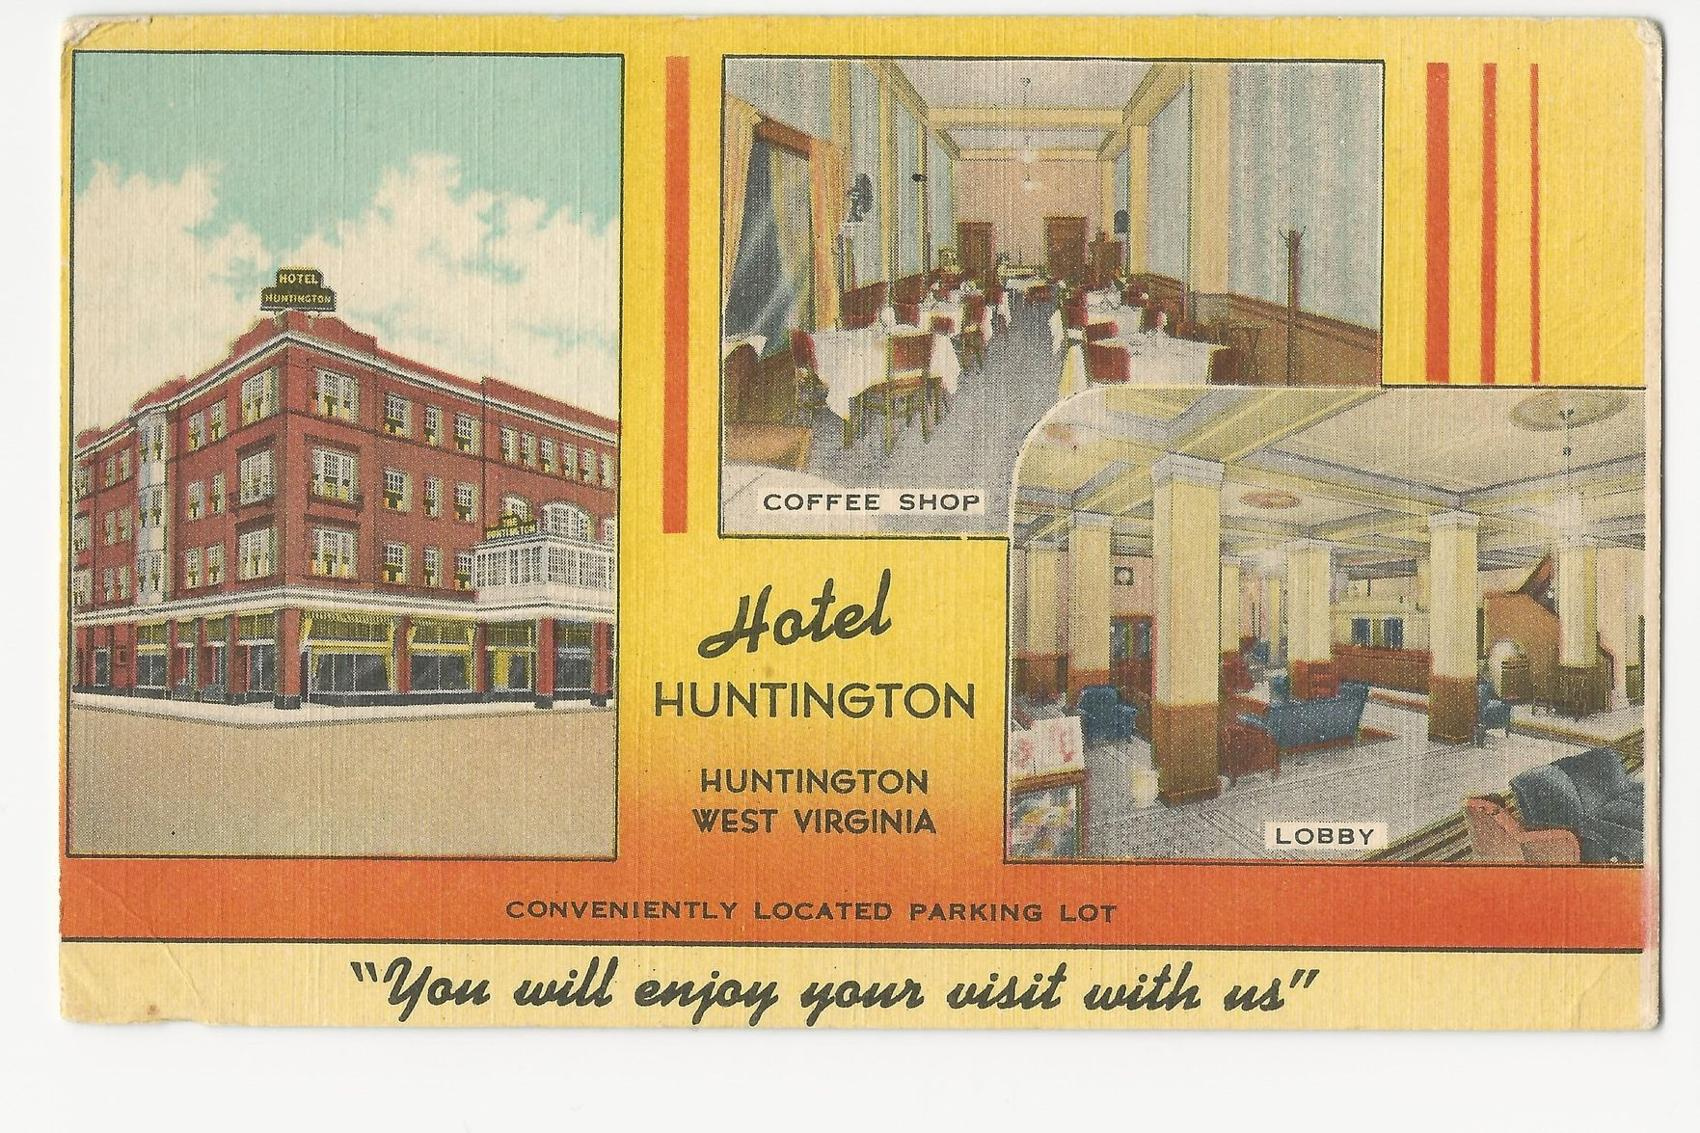 Postcard advertising the Hotel Huntington